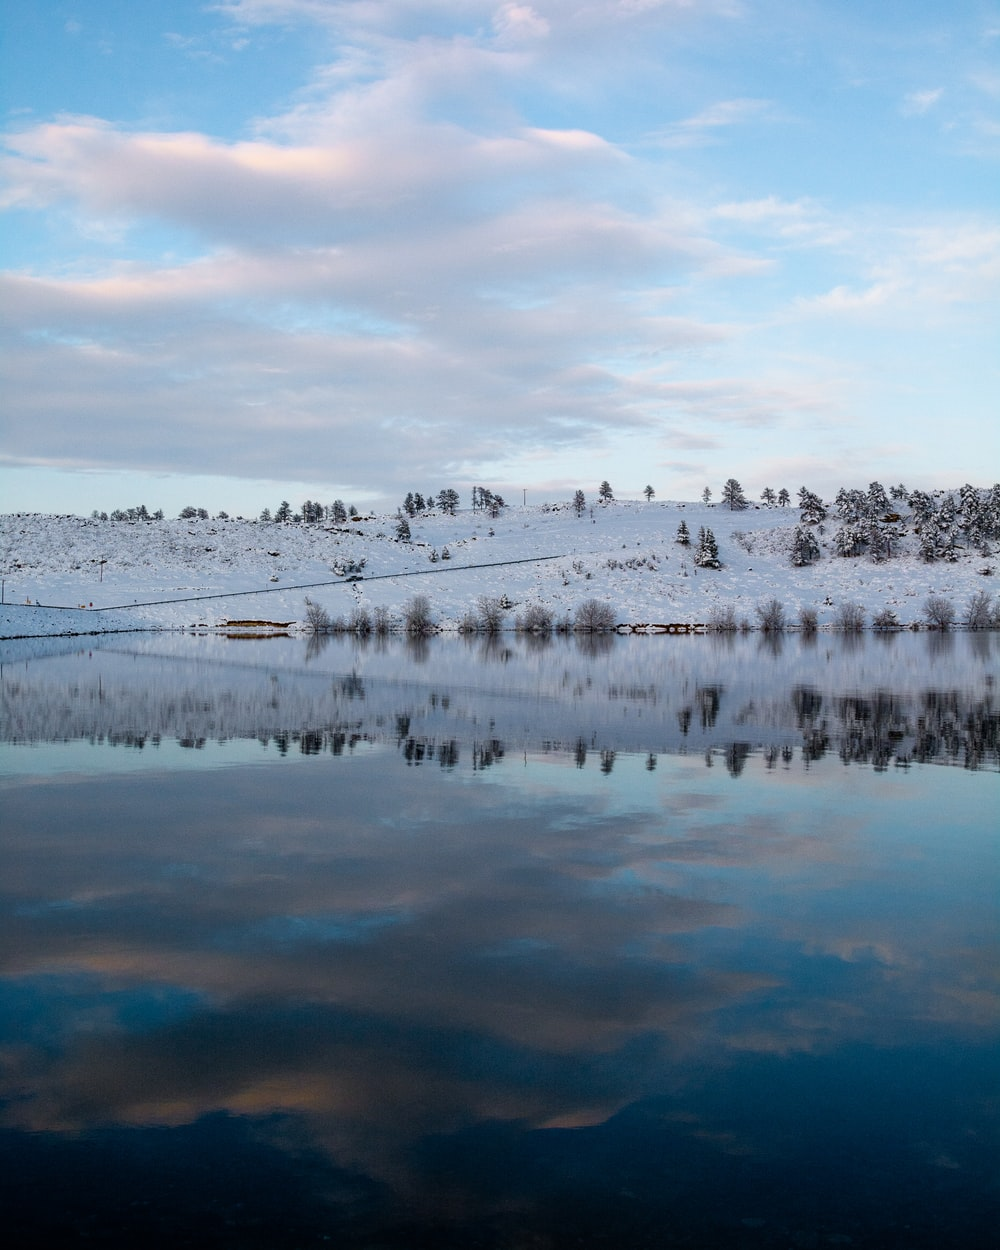 body of water with snow covered ground under cloudy sky during daytime